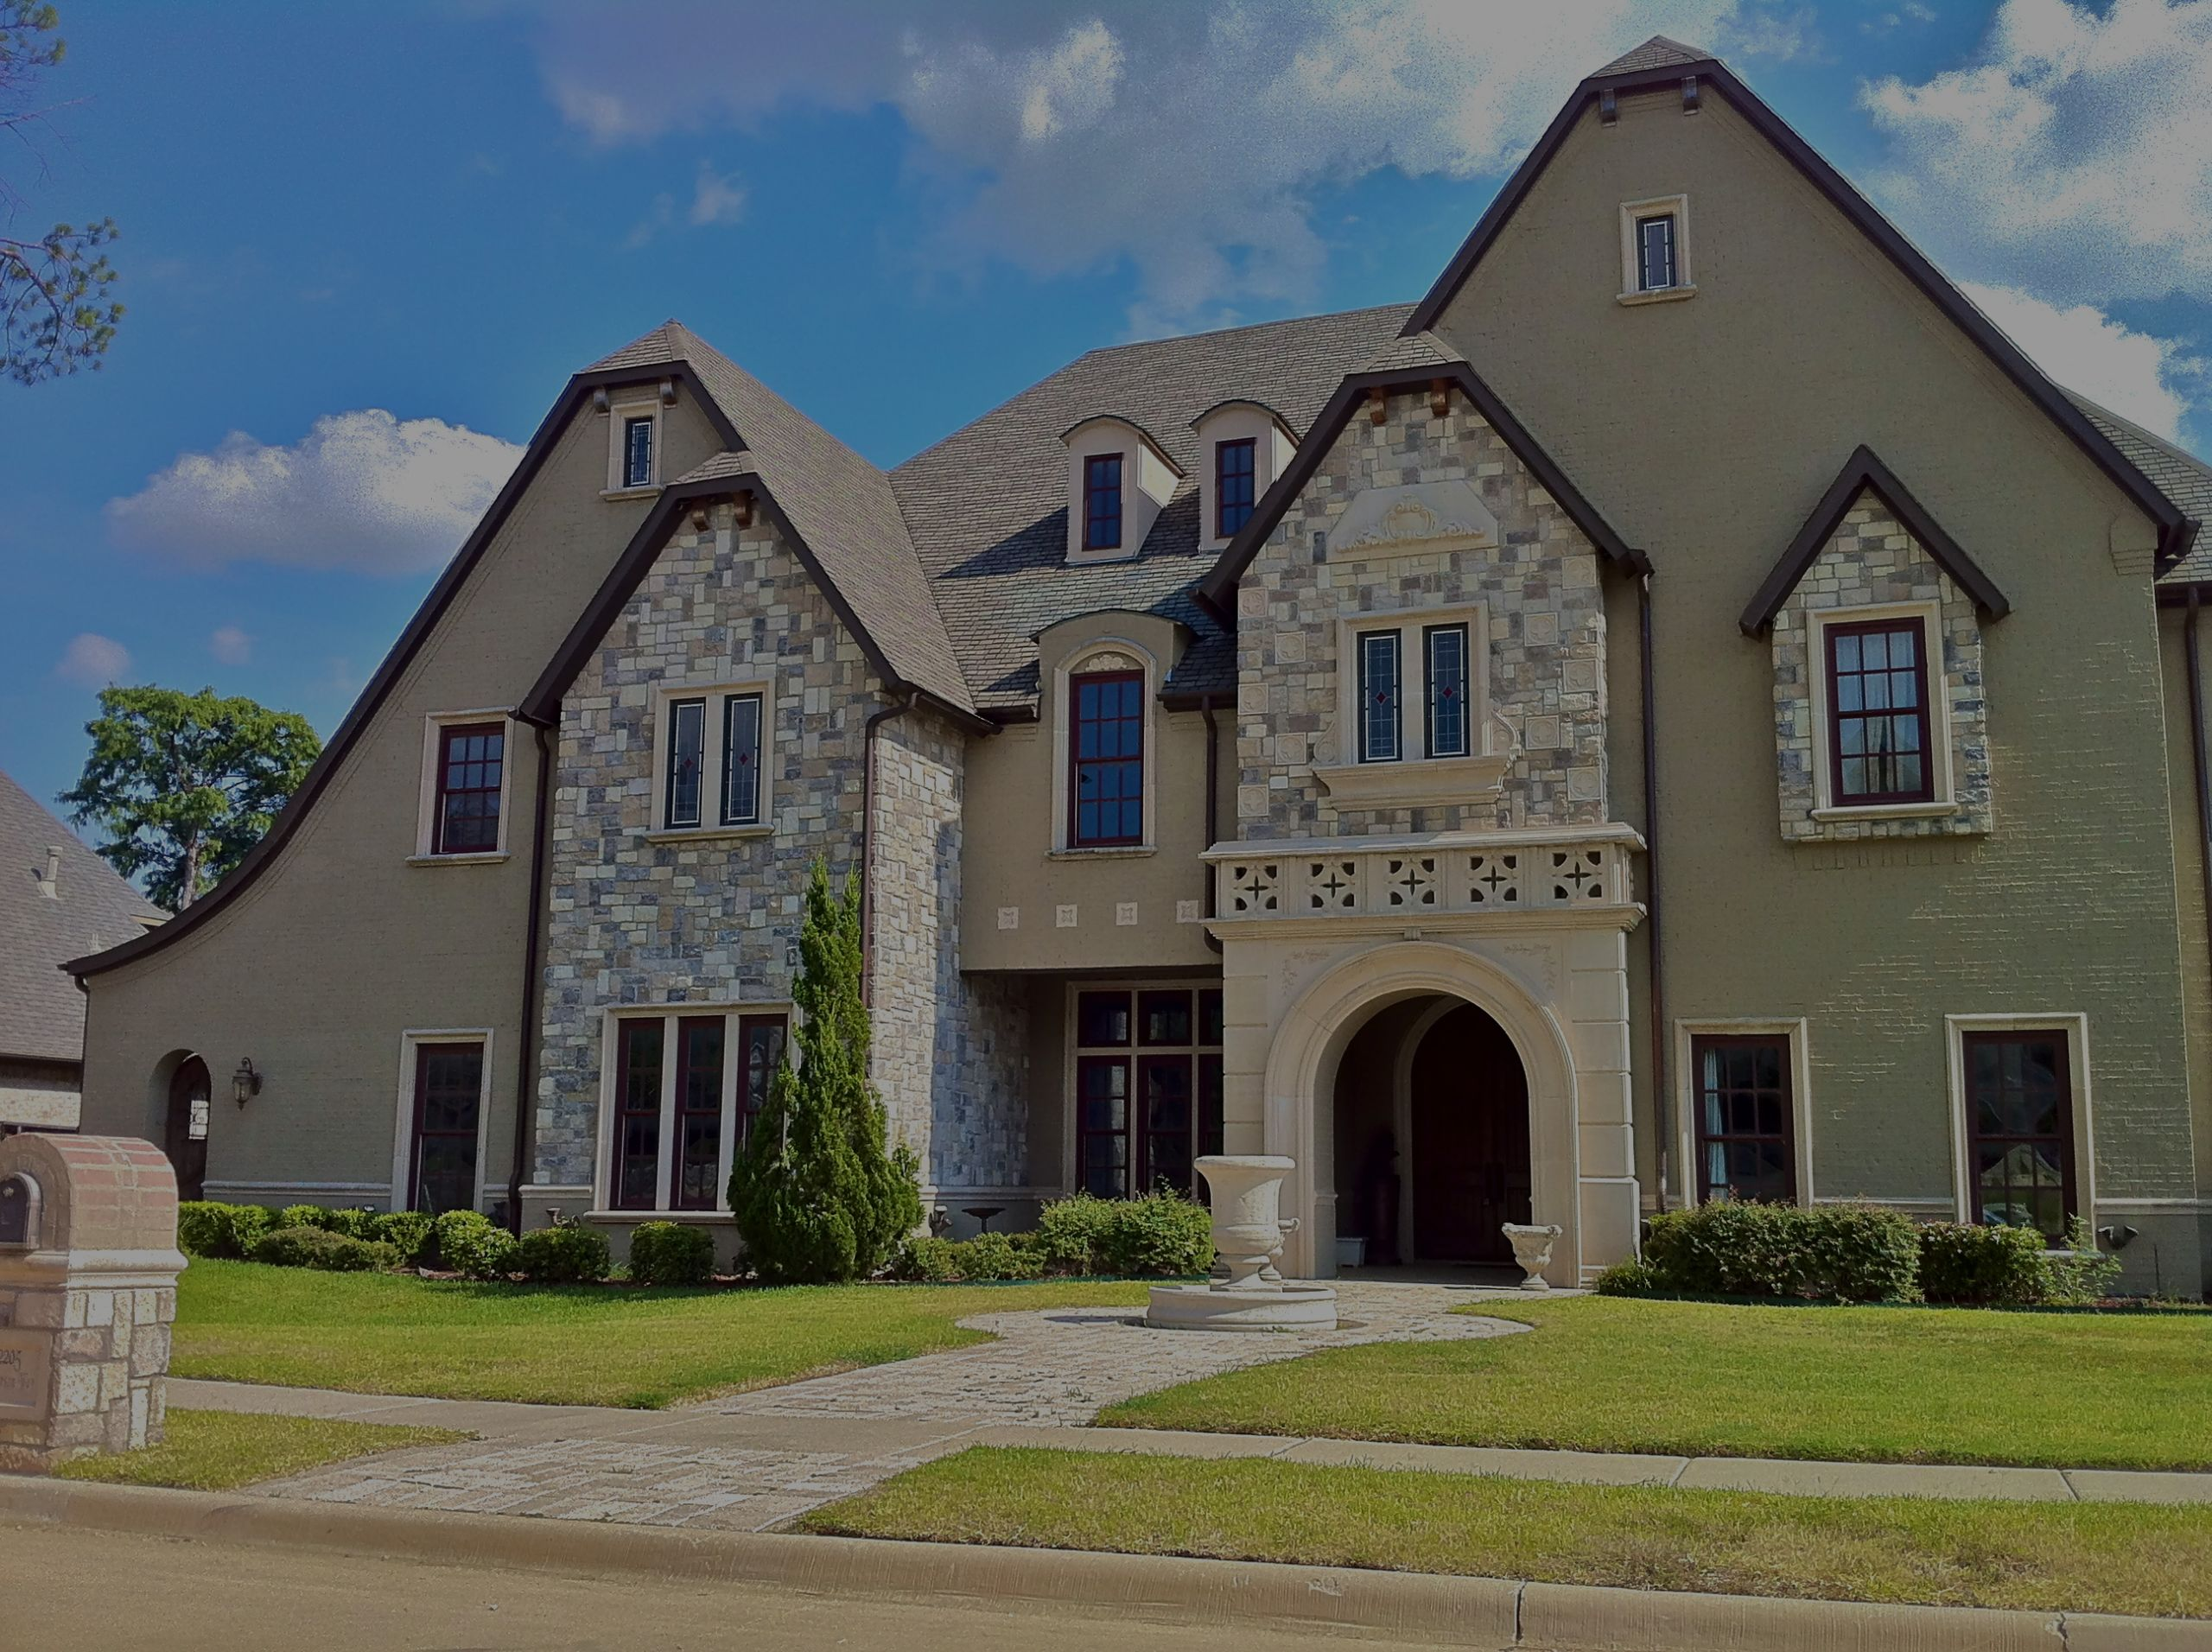 Dallas Real Estate – What Are The PROs And CONs Of Suitable Property Contingencies?